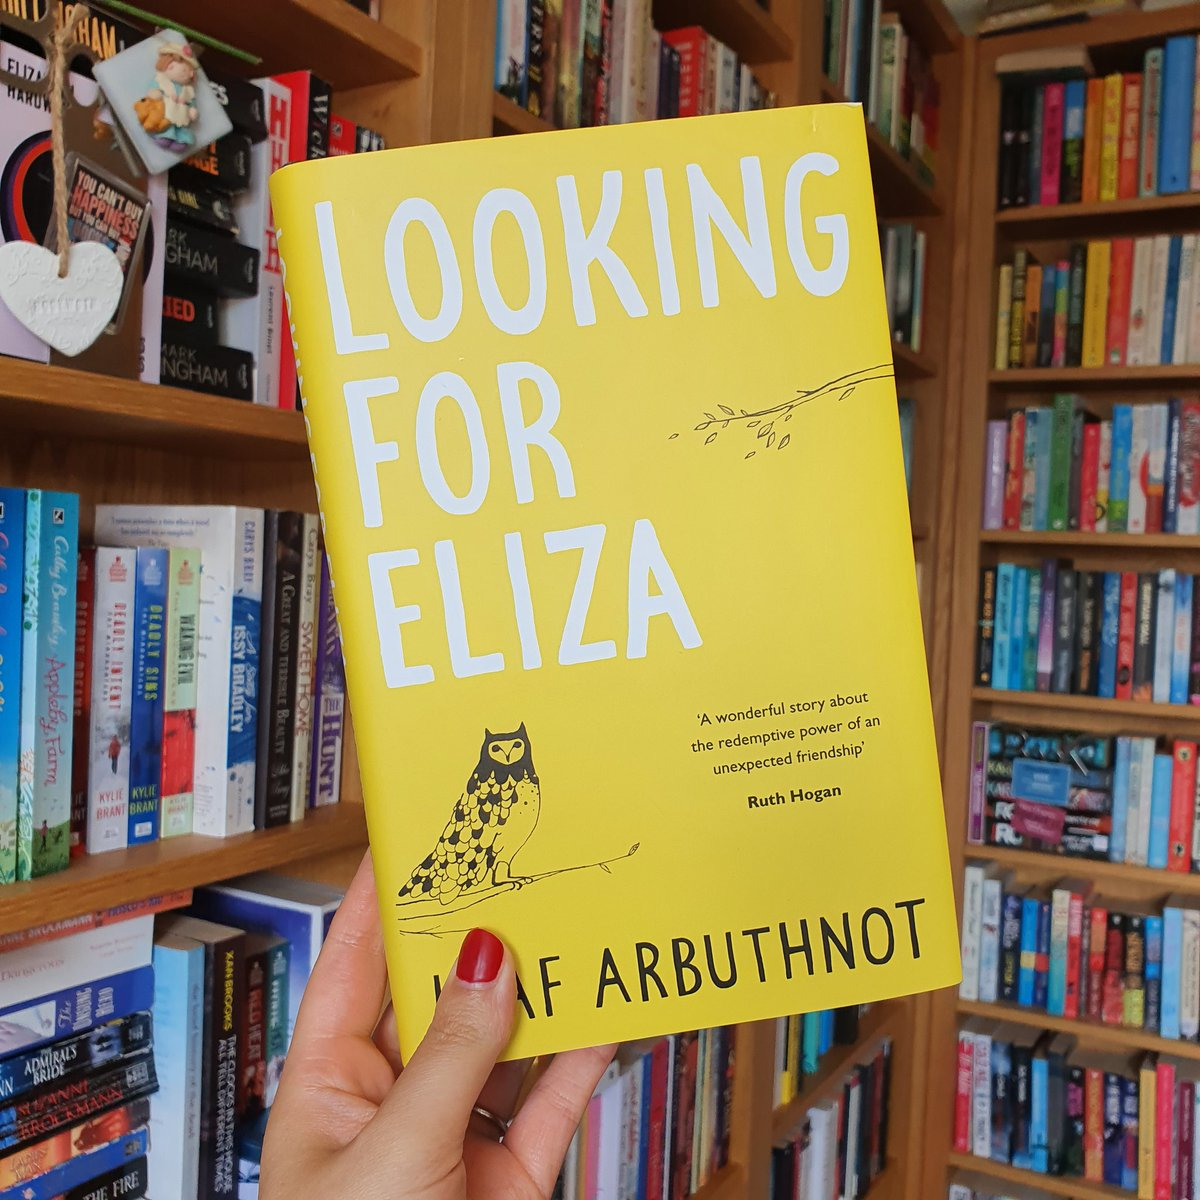 In the mood for a giveaway today, so offering up my copy of  Looking For Eliza by Leaf Arbuthnot, perfect for fans of #pensionersinthepages and intergenerational friendship.   Just follow, retweet and comment to get your name in the hat. Uk only ends 5th August 8pm. https://t.co/EJDHLhZ7A9